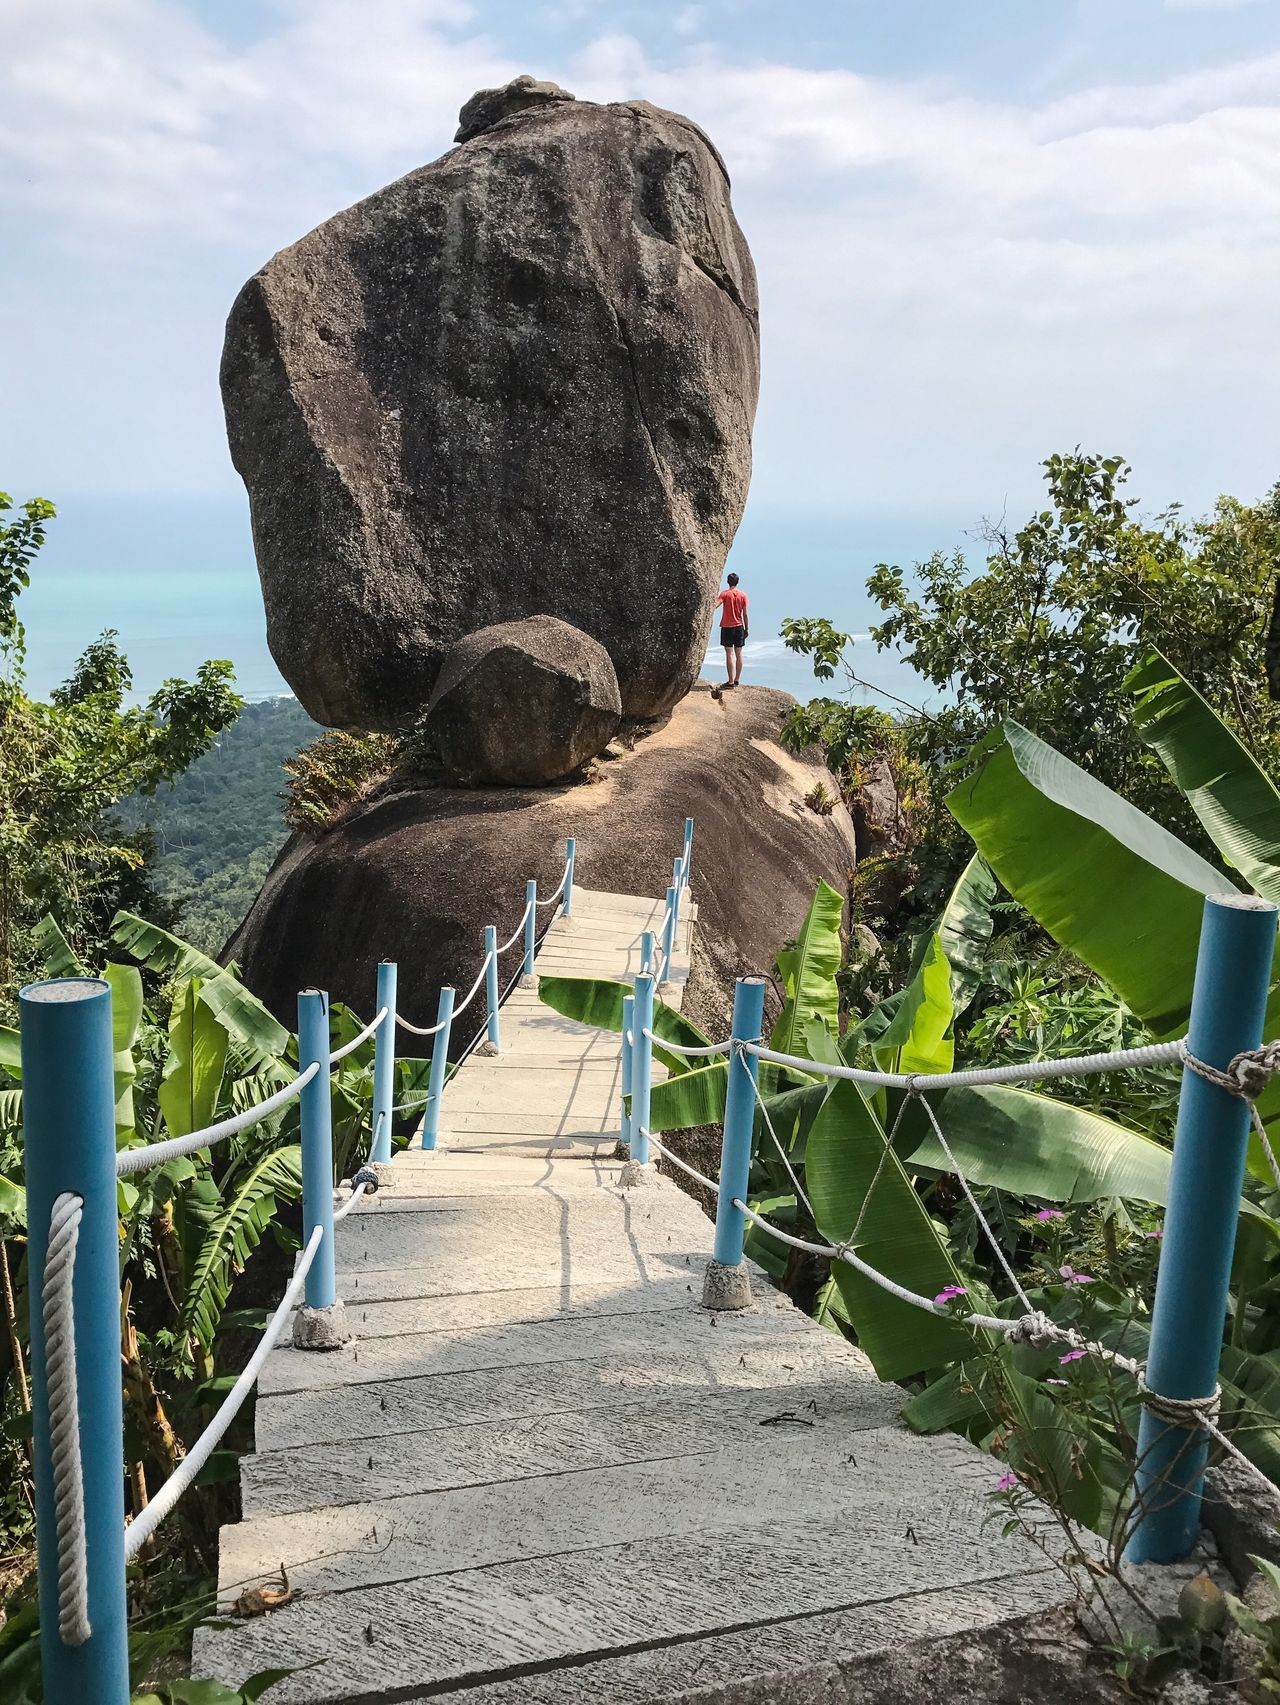 Adult Adults Only Adventure Beauty In Nature Bridge Cloud - Sky Day Full Length Hiking Koh Samui Leading Lines Leisure Activity Nature On Top One Man Only One Person Outdoors People Rear View Rock - Object Rock Formation Sky Standing Tourist Attraction  Travel Destinations